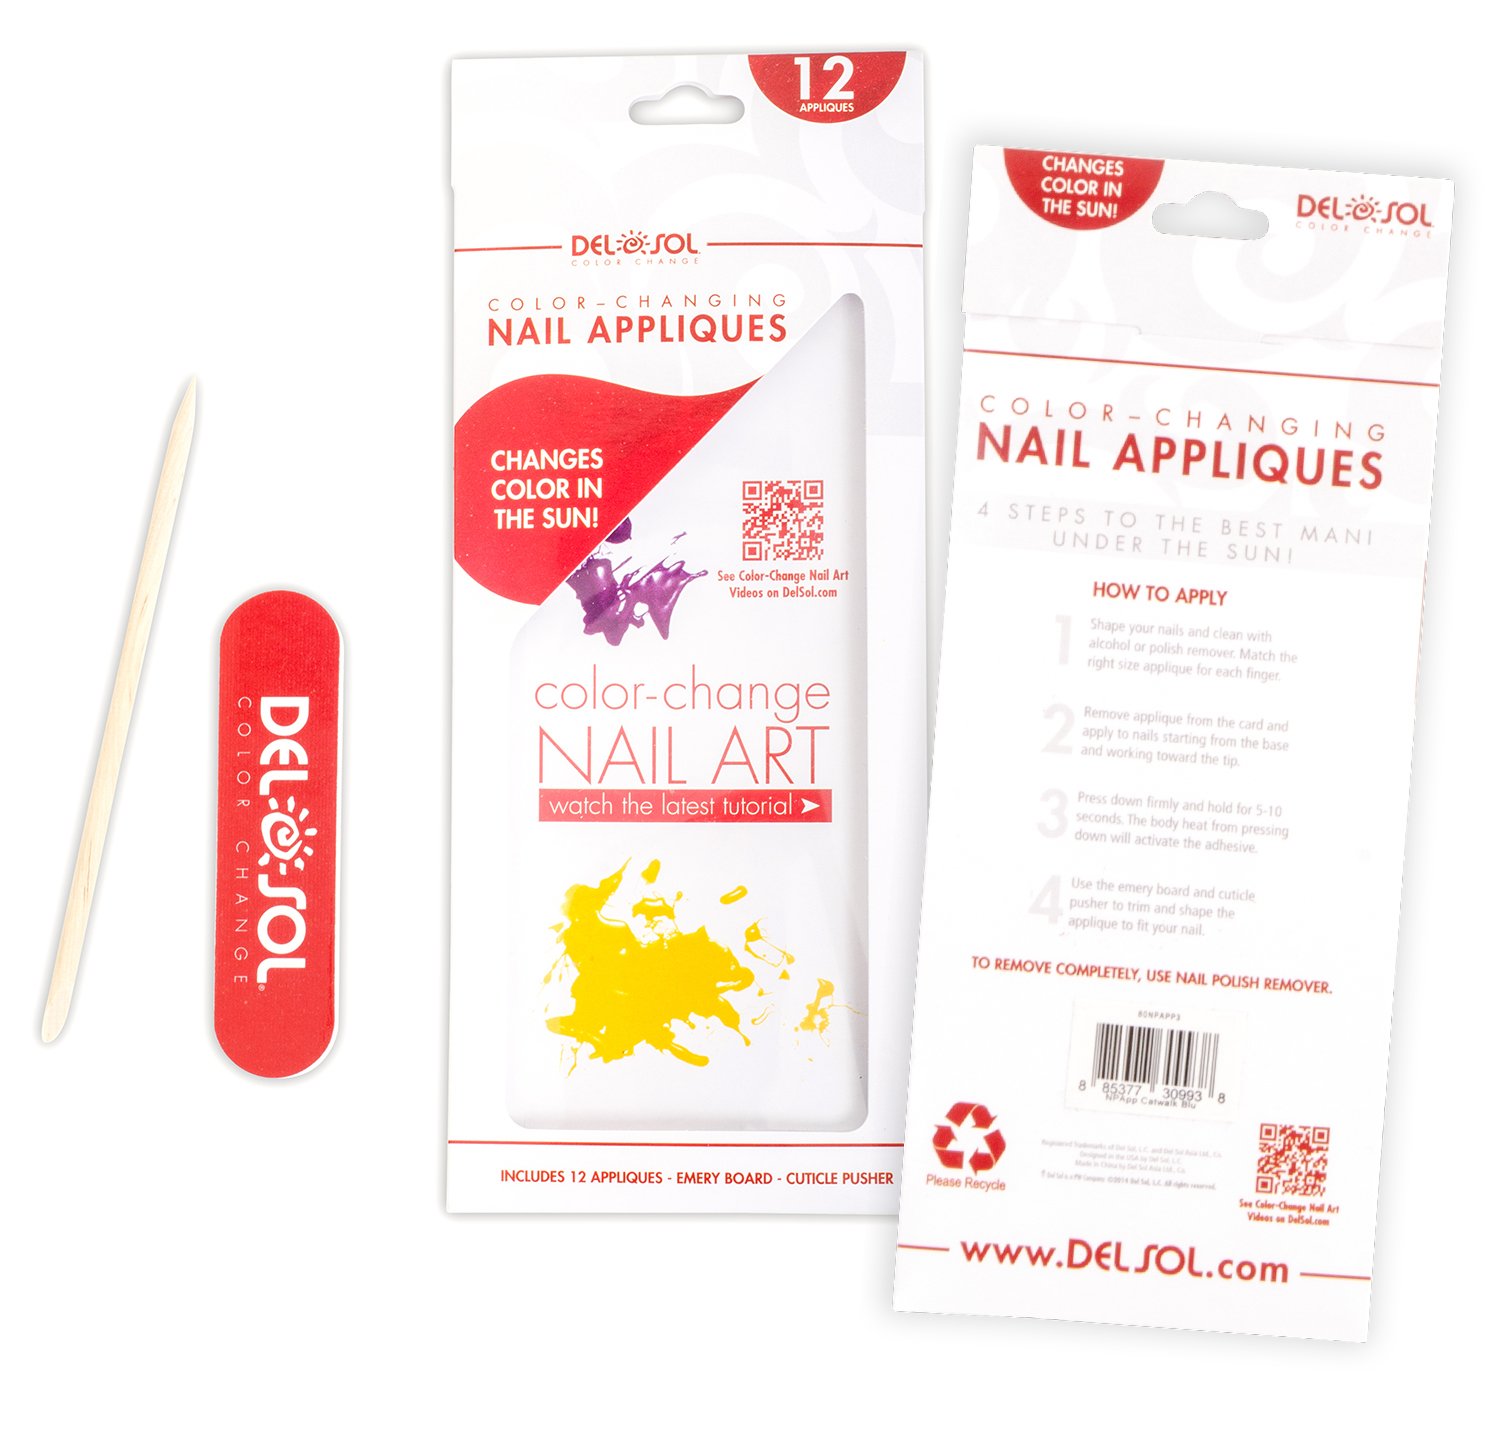 Ag design graphics websites video photography creative designed the window area of the packaging to advertise del sols nail art youtube channel prinsesfo Images